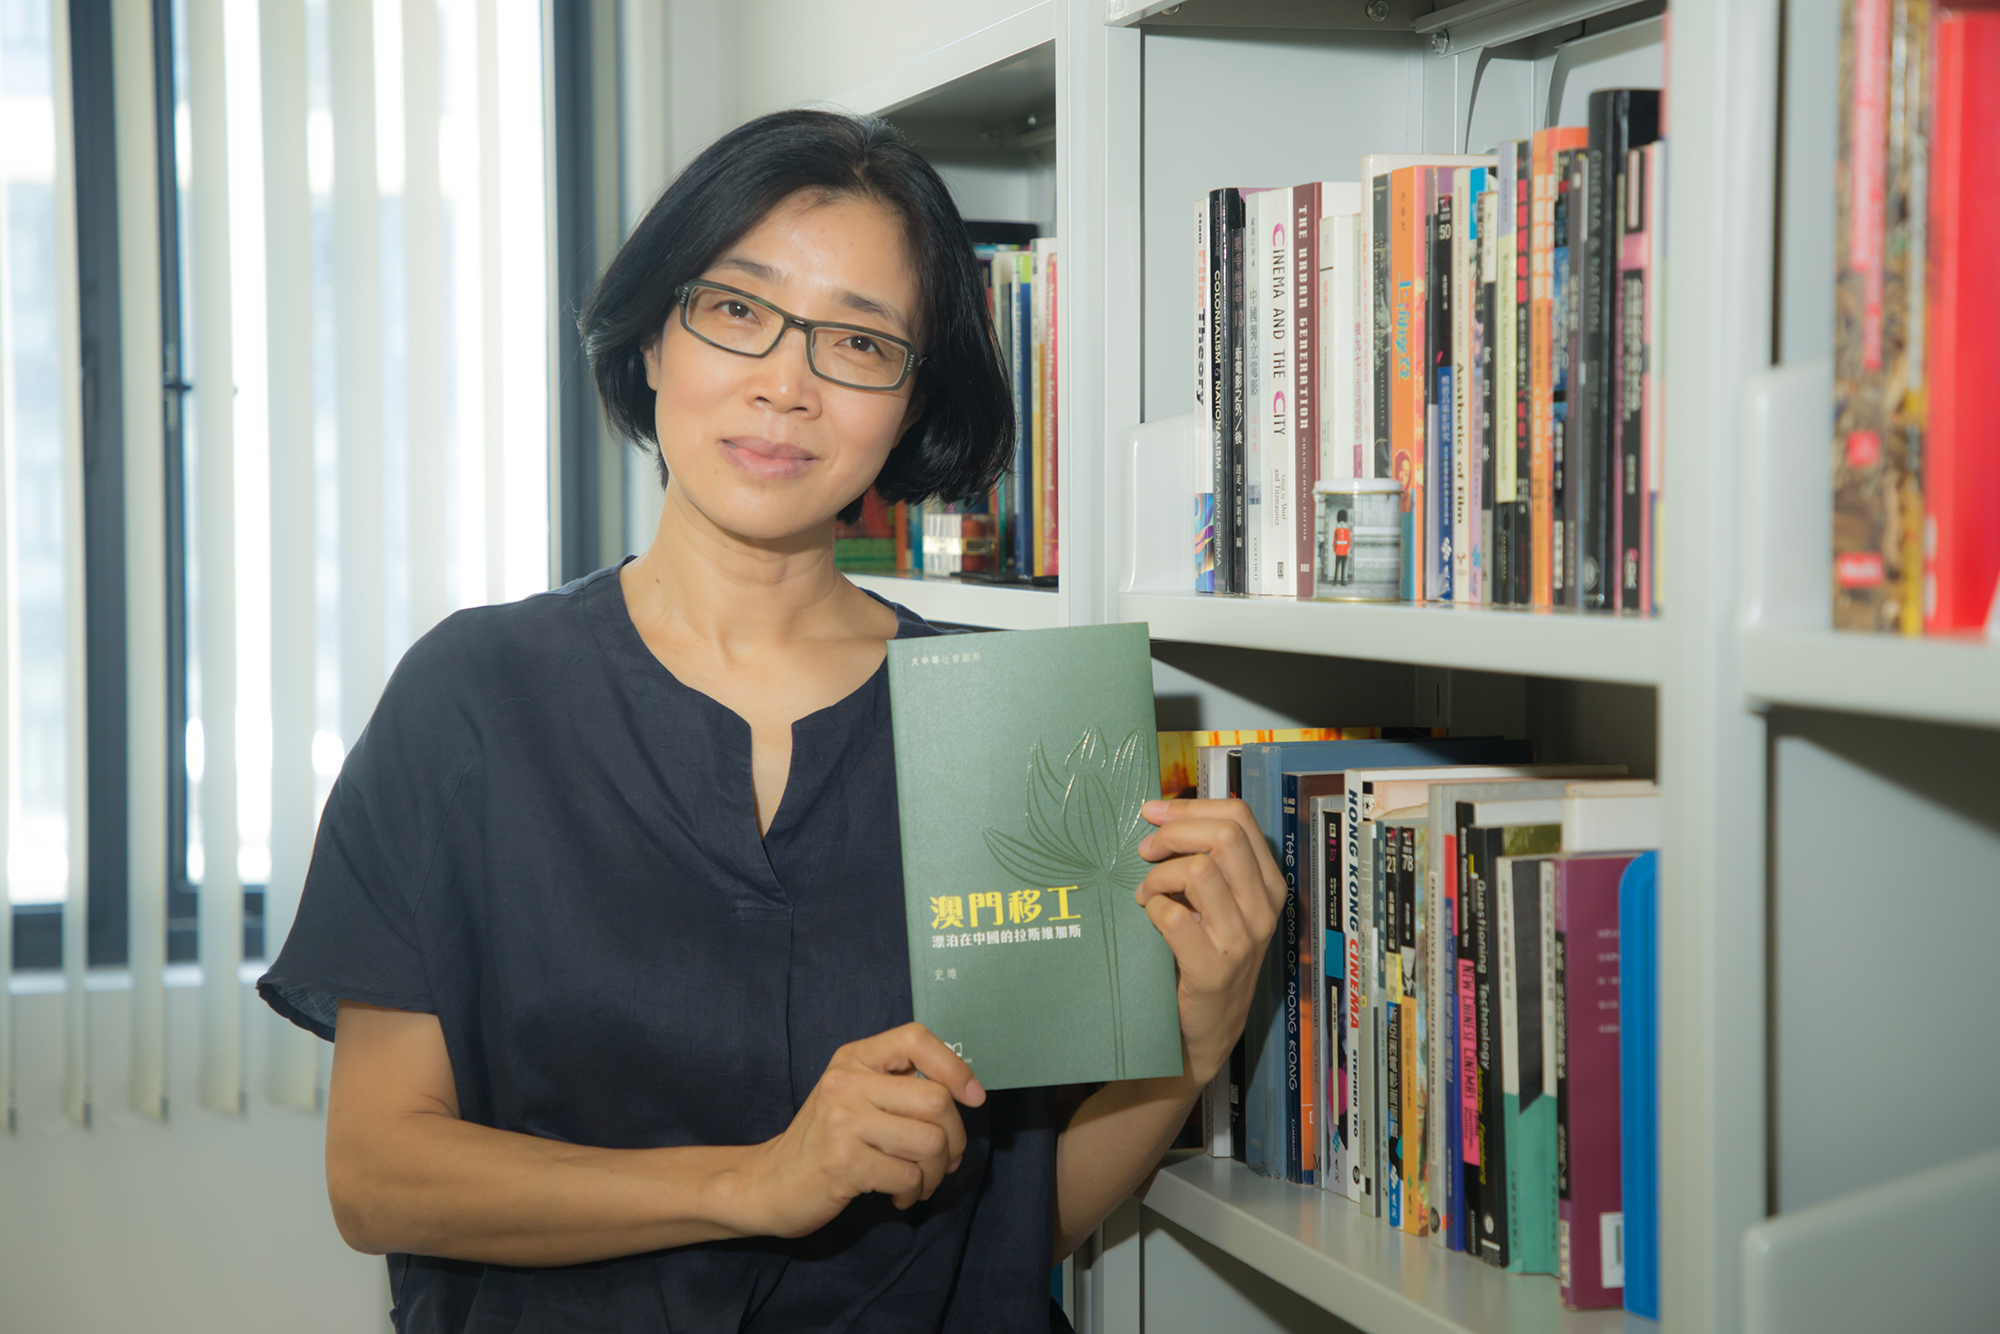 Dr Shi Wei from the Department of Communication has published a new book on migrant workers in Macao